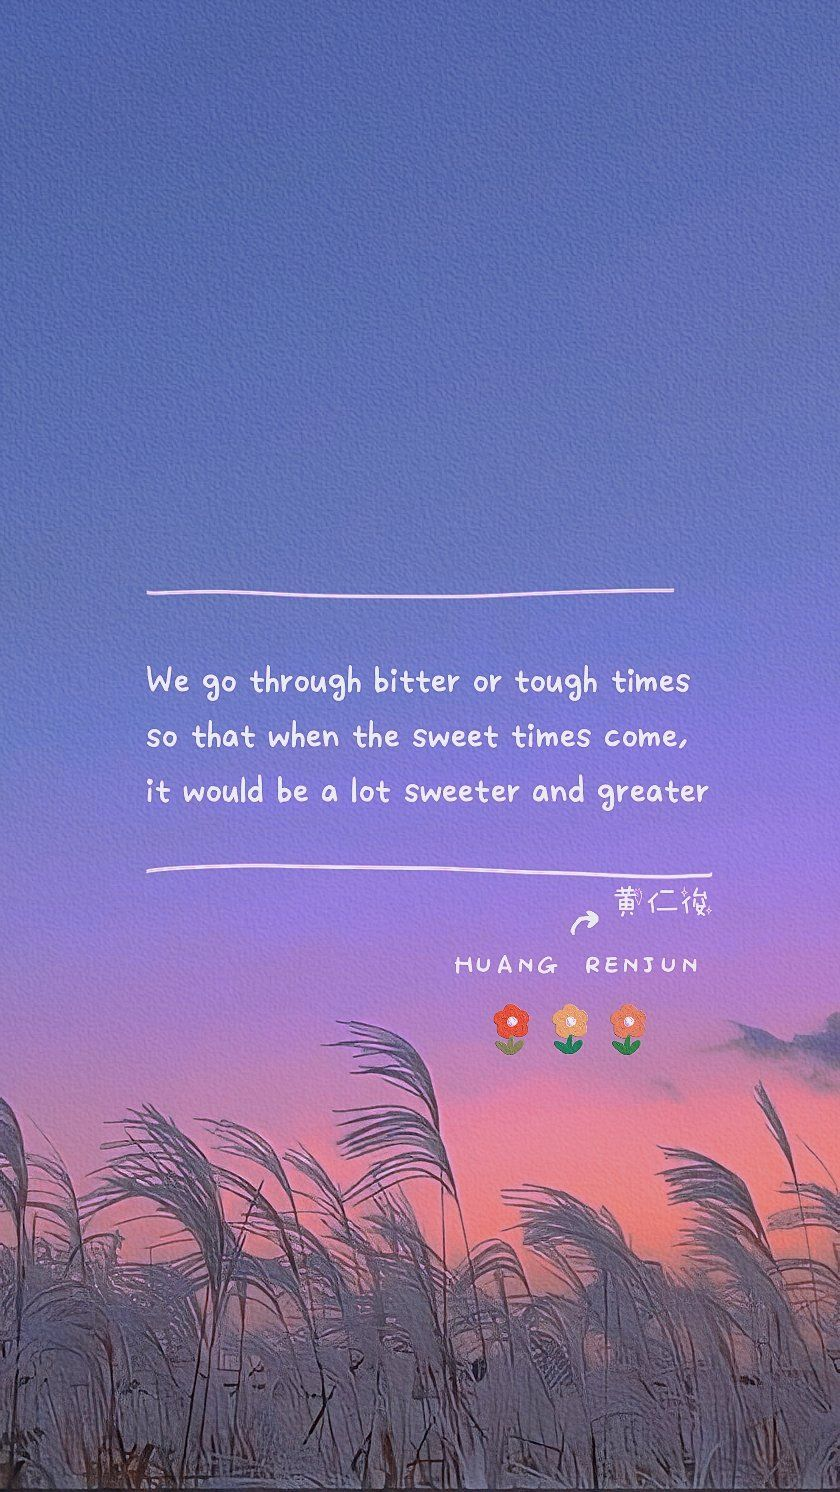 Twinkle On Twitter Cute Inspirational Quotes Motivational Quotes Wallpaper Korea Quotes